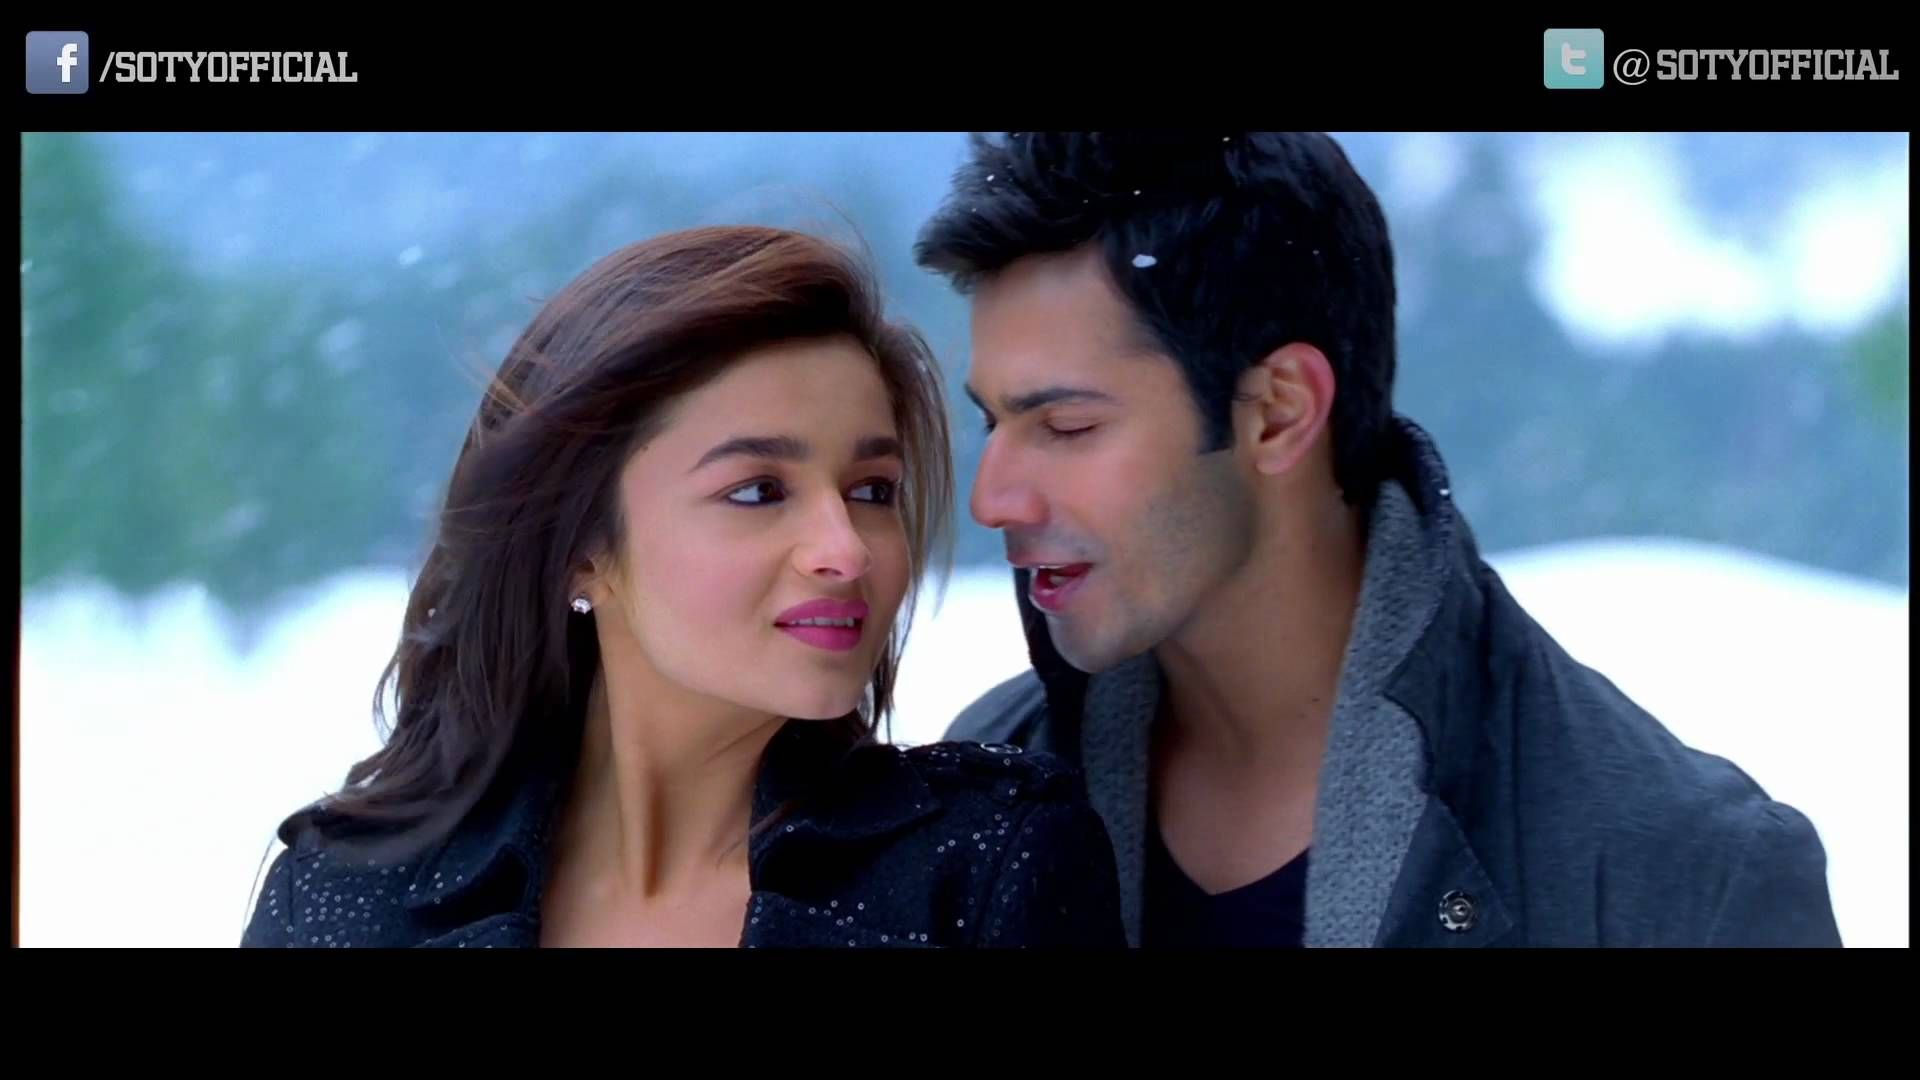 Ishq Wala Love Student Of The Year The Official Song Hqd M Axni You Bollywood Music Student Of The Year Songs